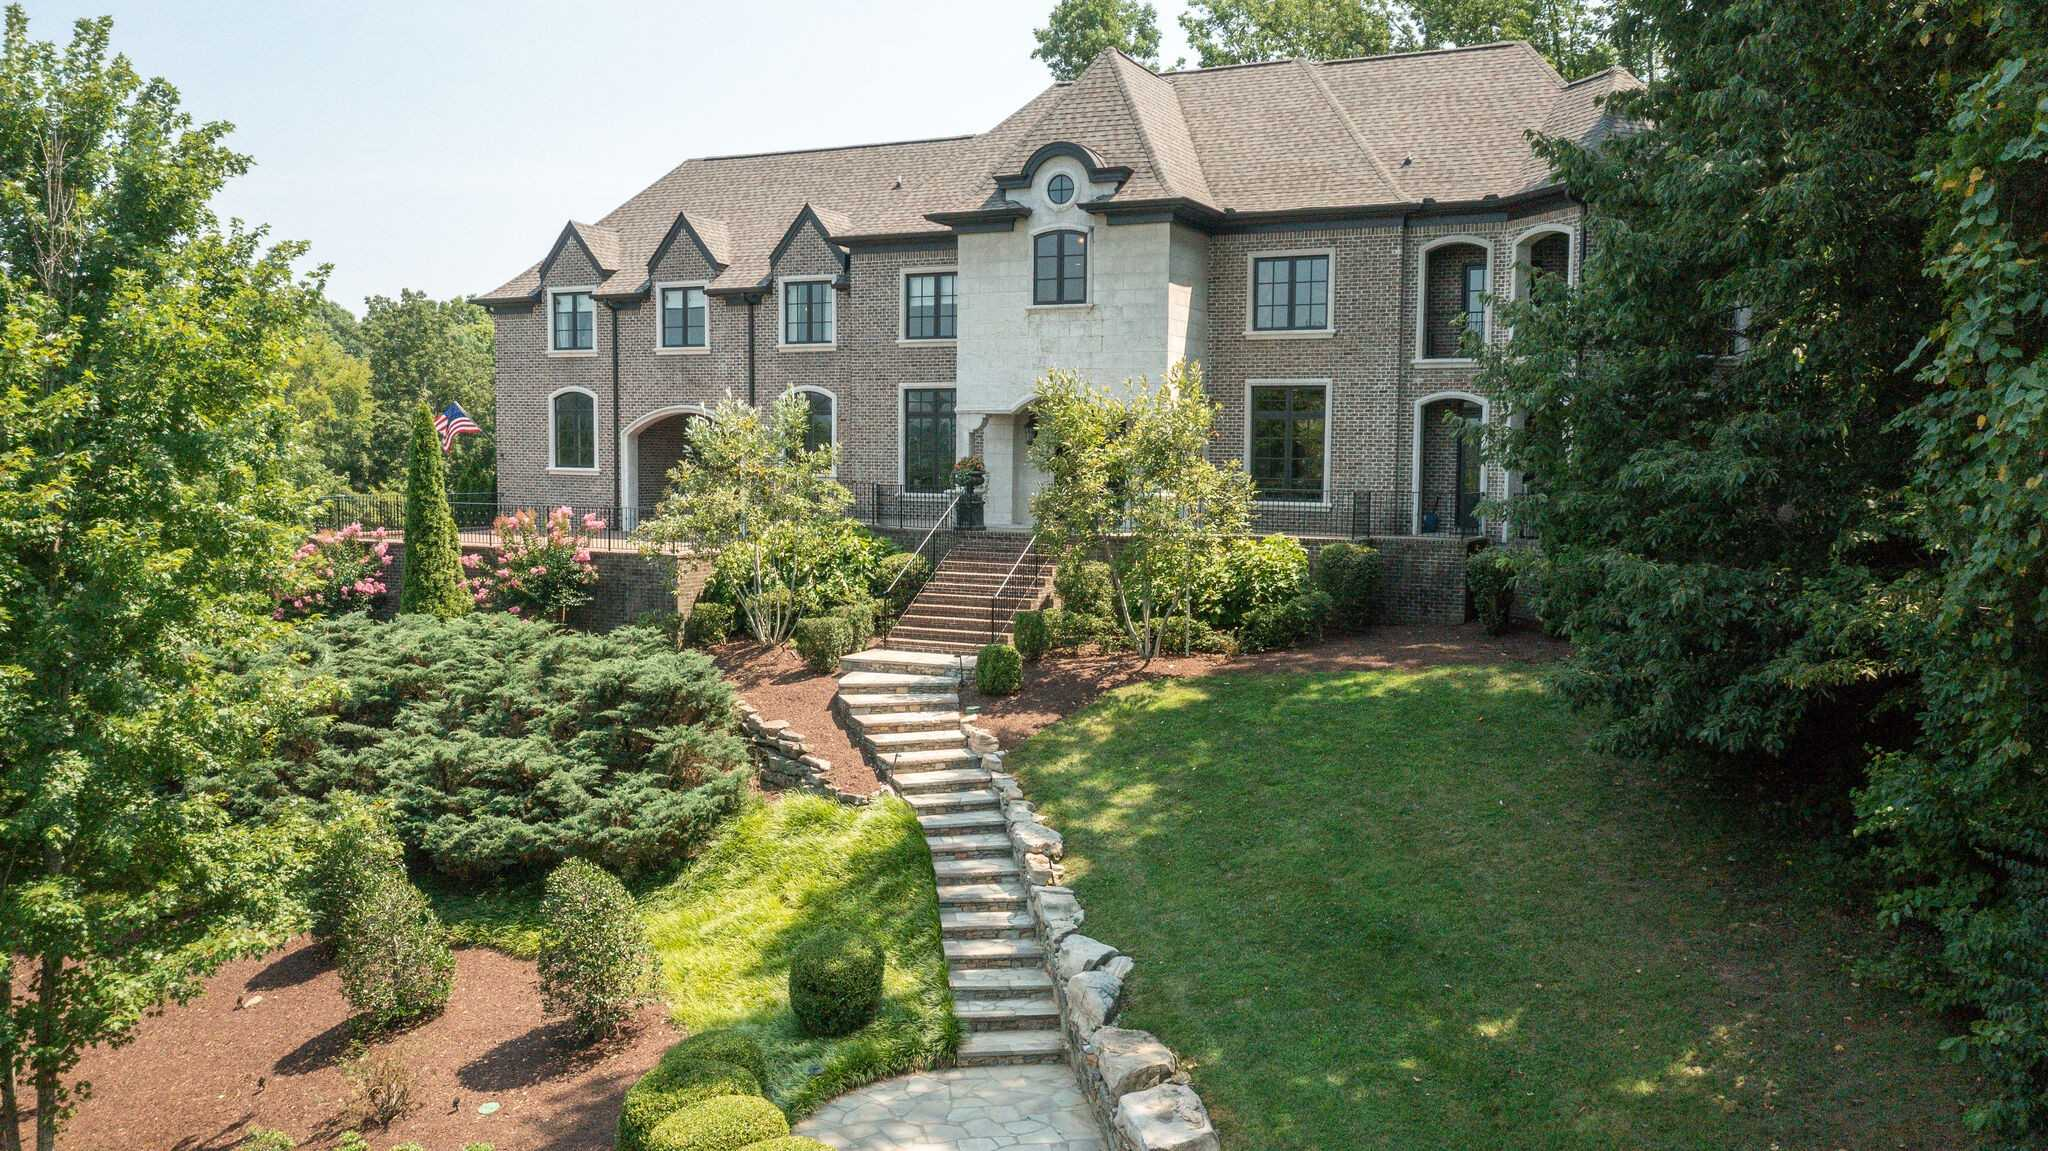 $2,999,900 - 6Br/6Ba -  for Sale in Lenox Park, Brentwood